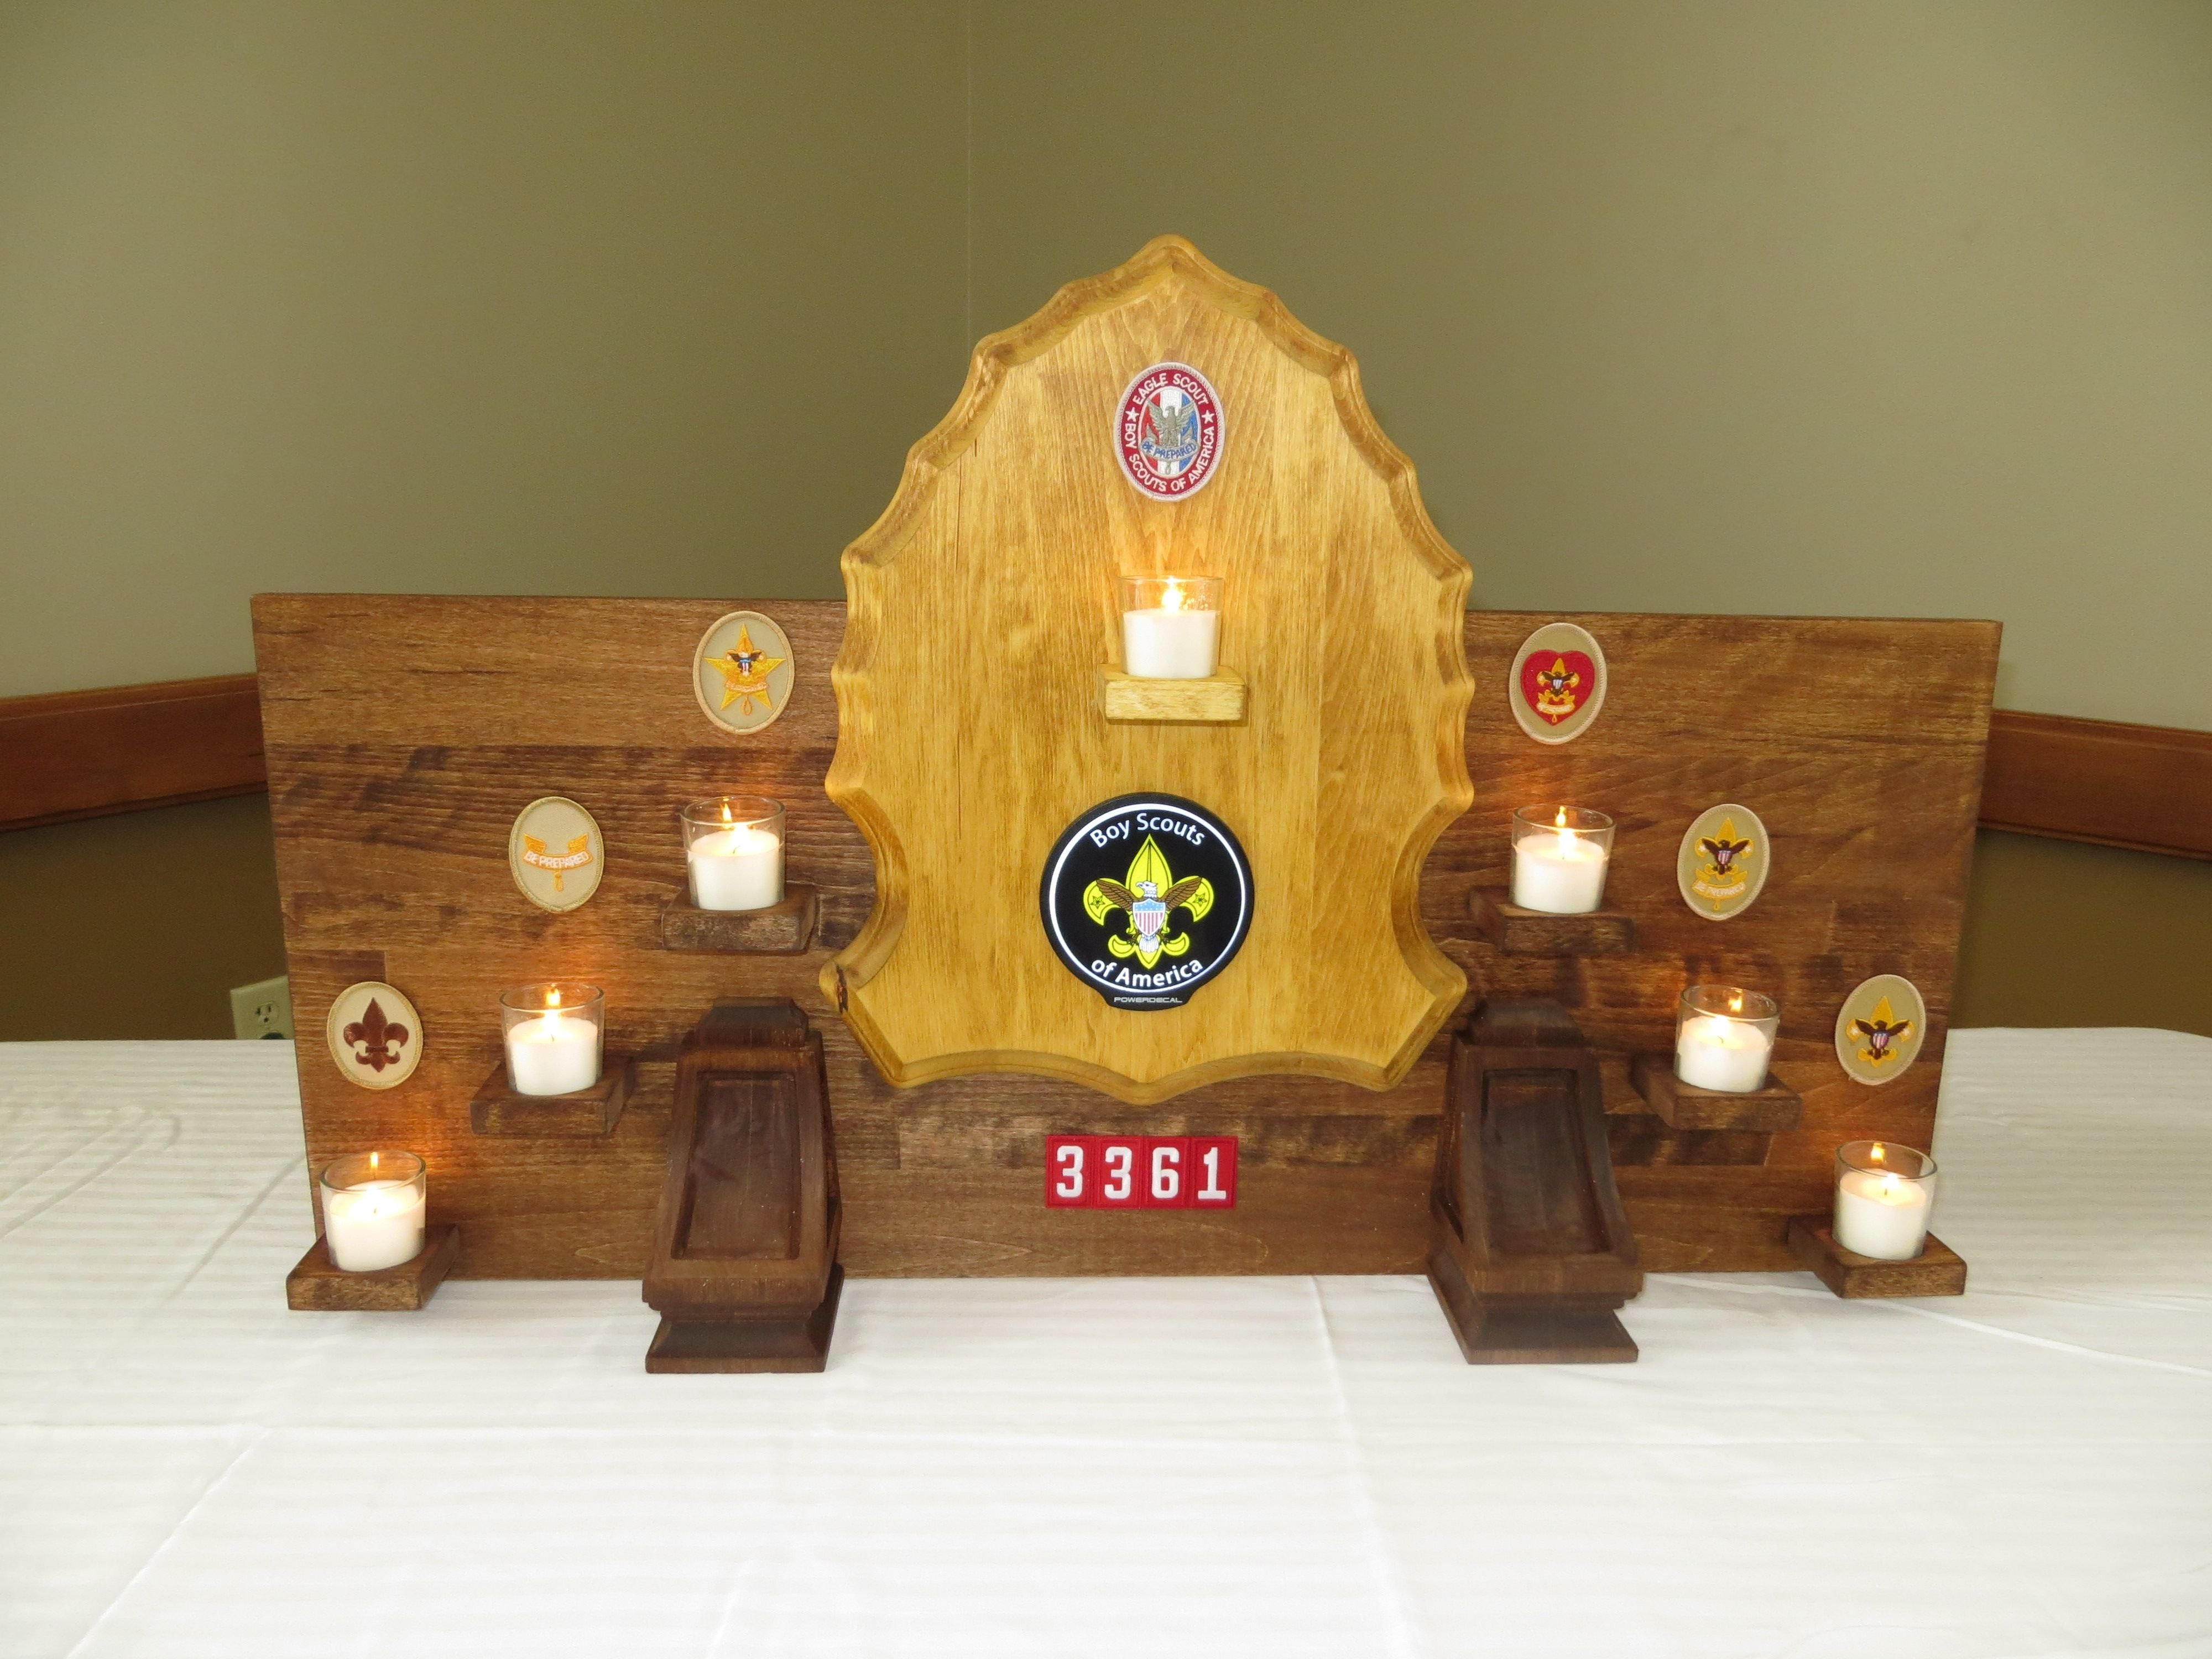 10 Perfect Eagle Court Of Honor Ideas this is a candle holder mark and ben made for our boy scout court of 2020